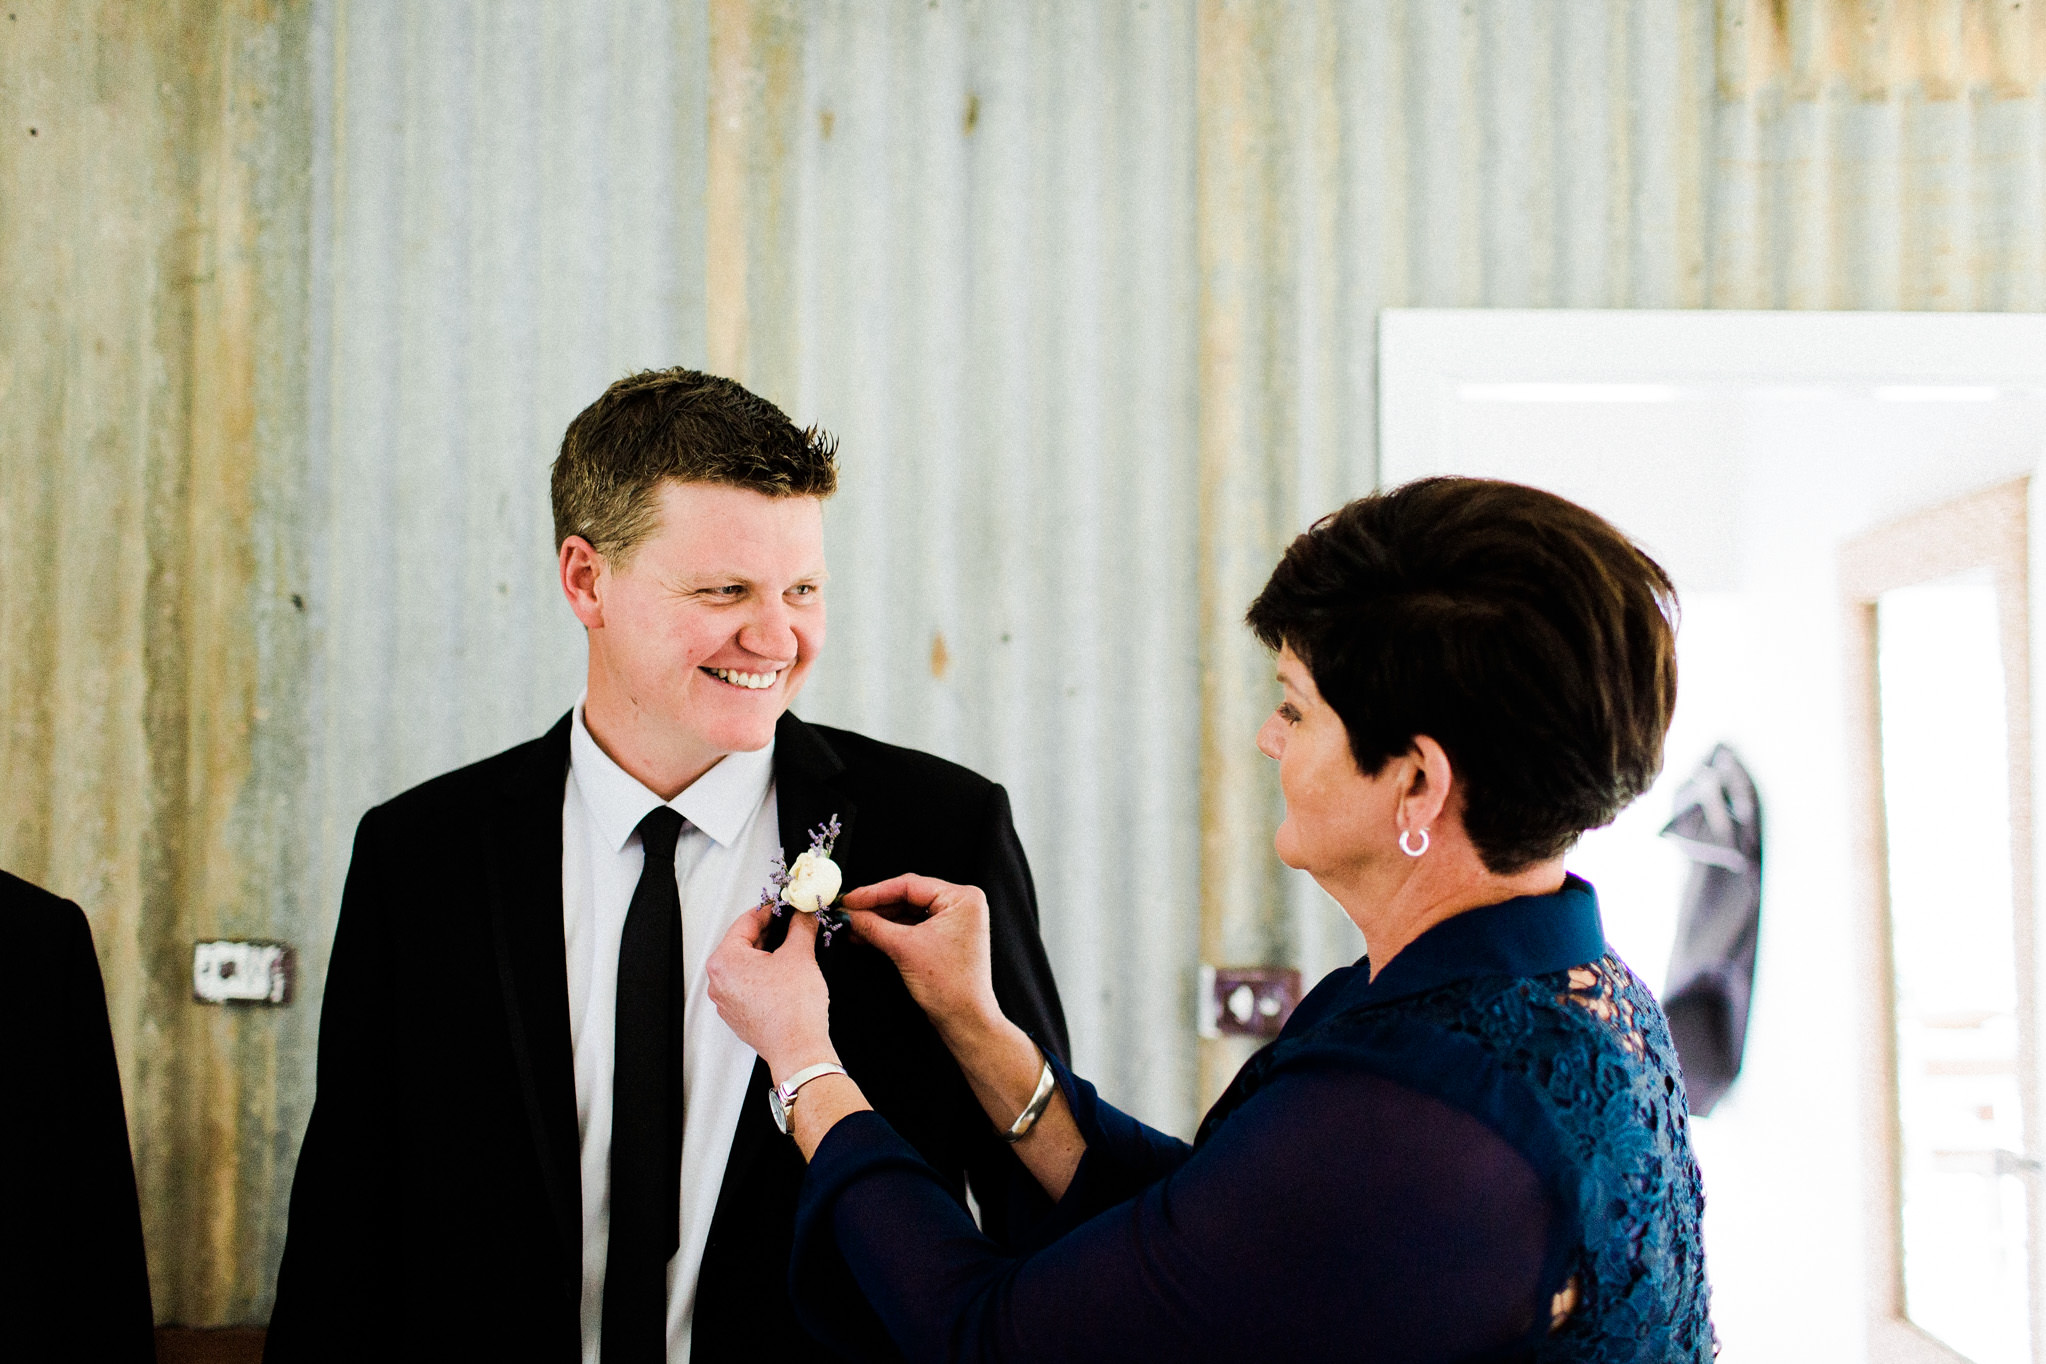 Wedding_Photographer_Newcastle_JoMatt-1032.jpg